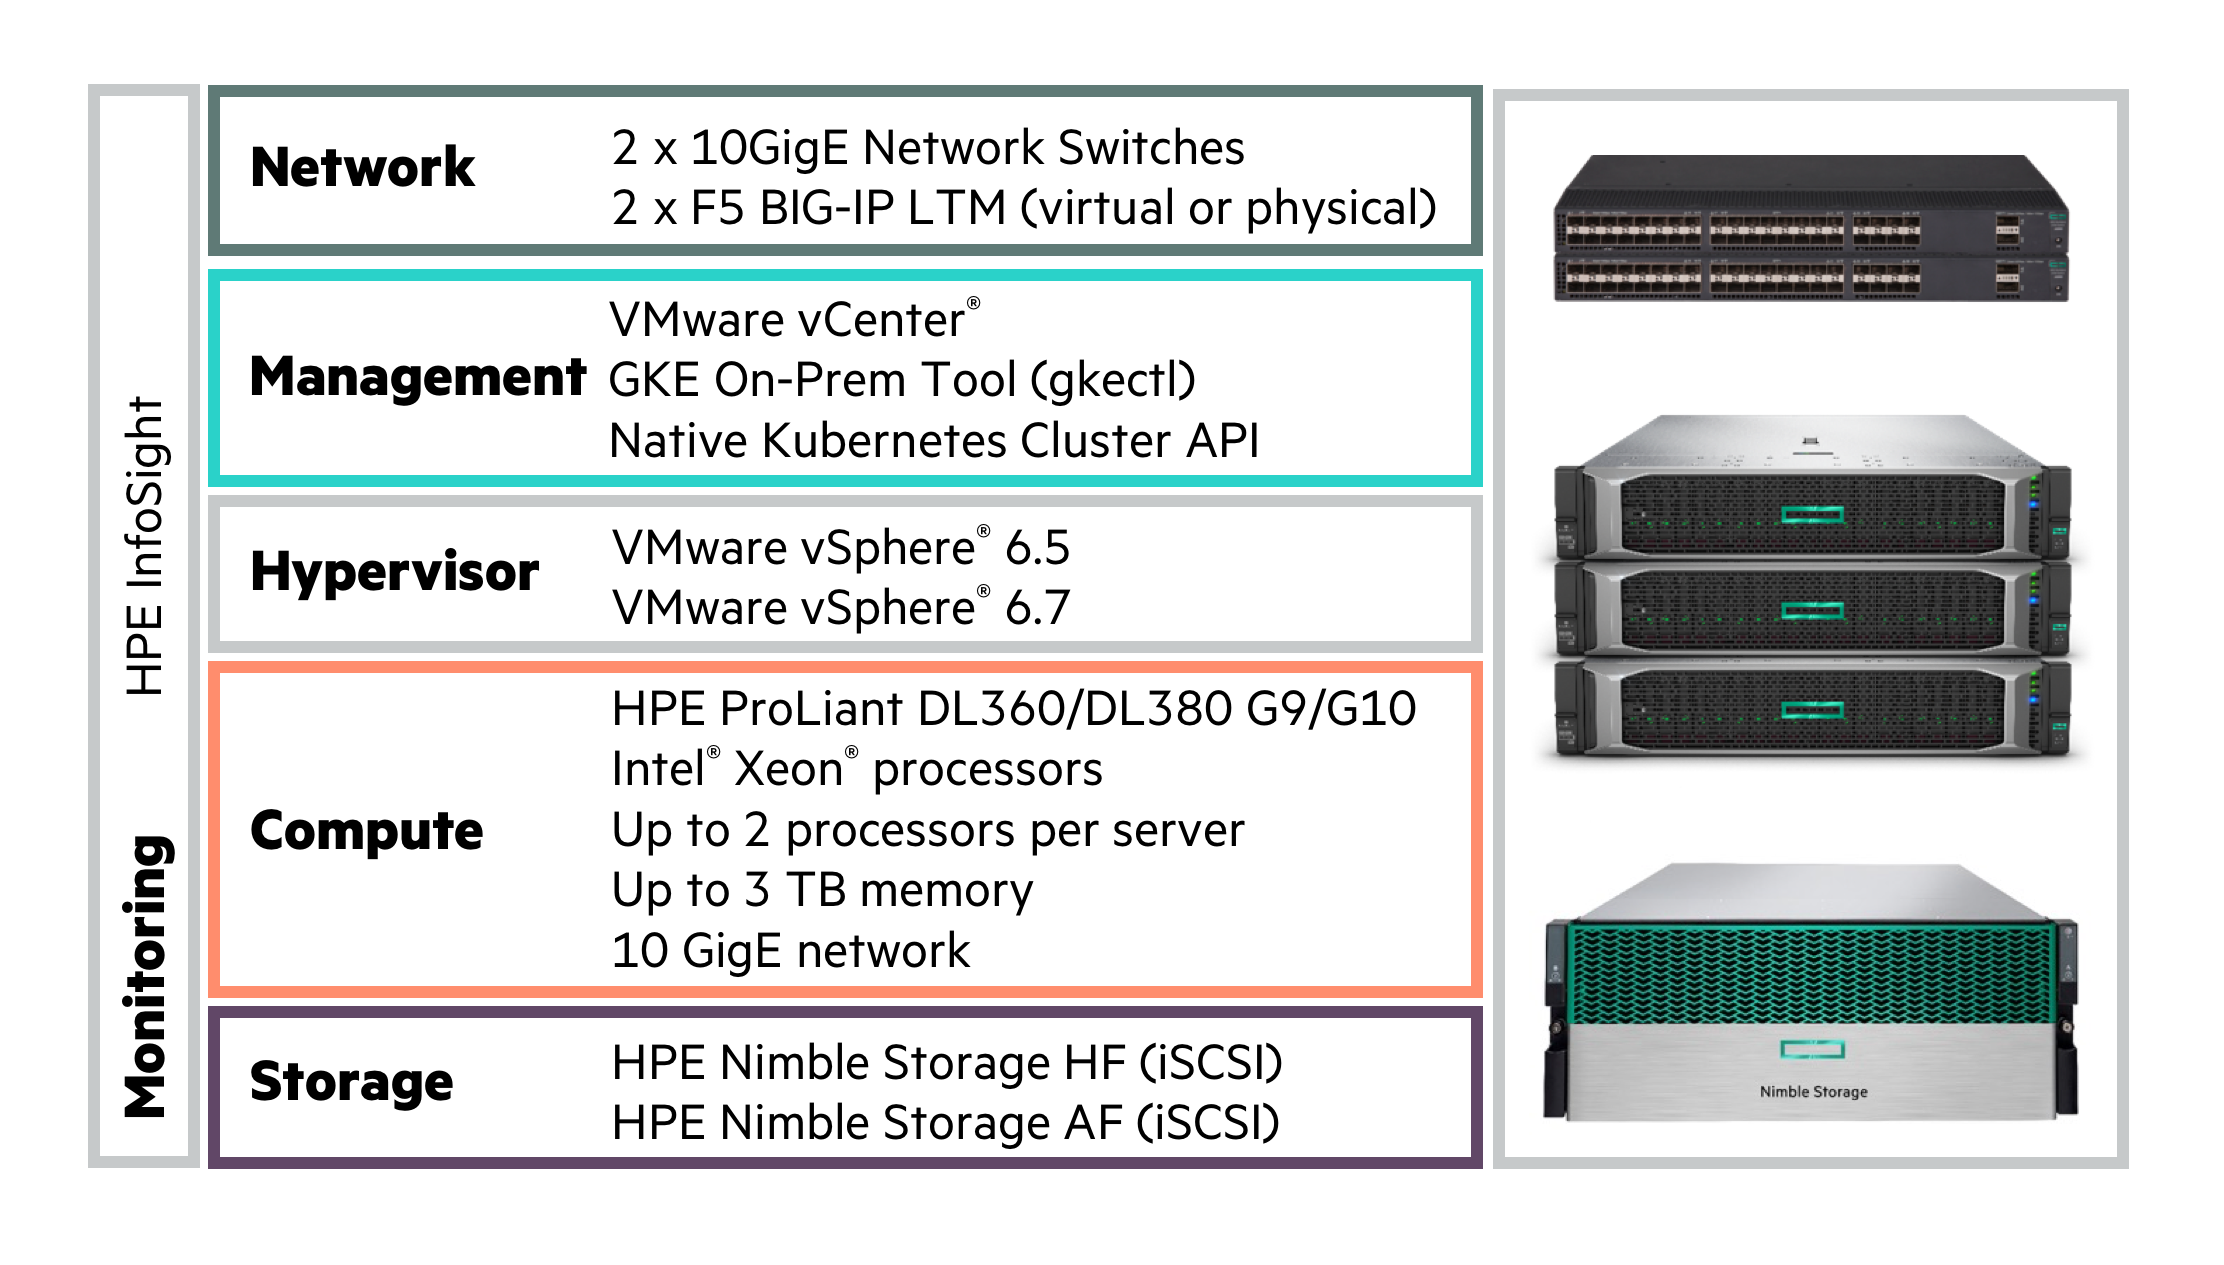 Converged GKE On-Prem solution from HPE